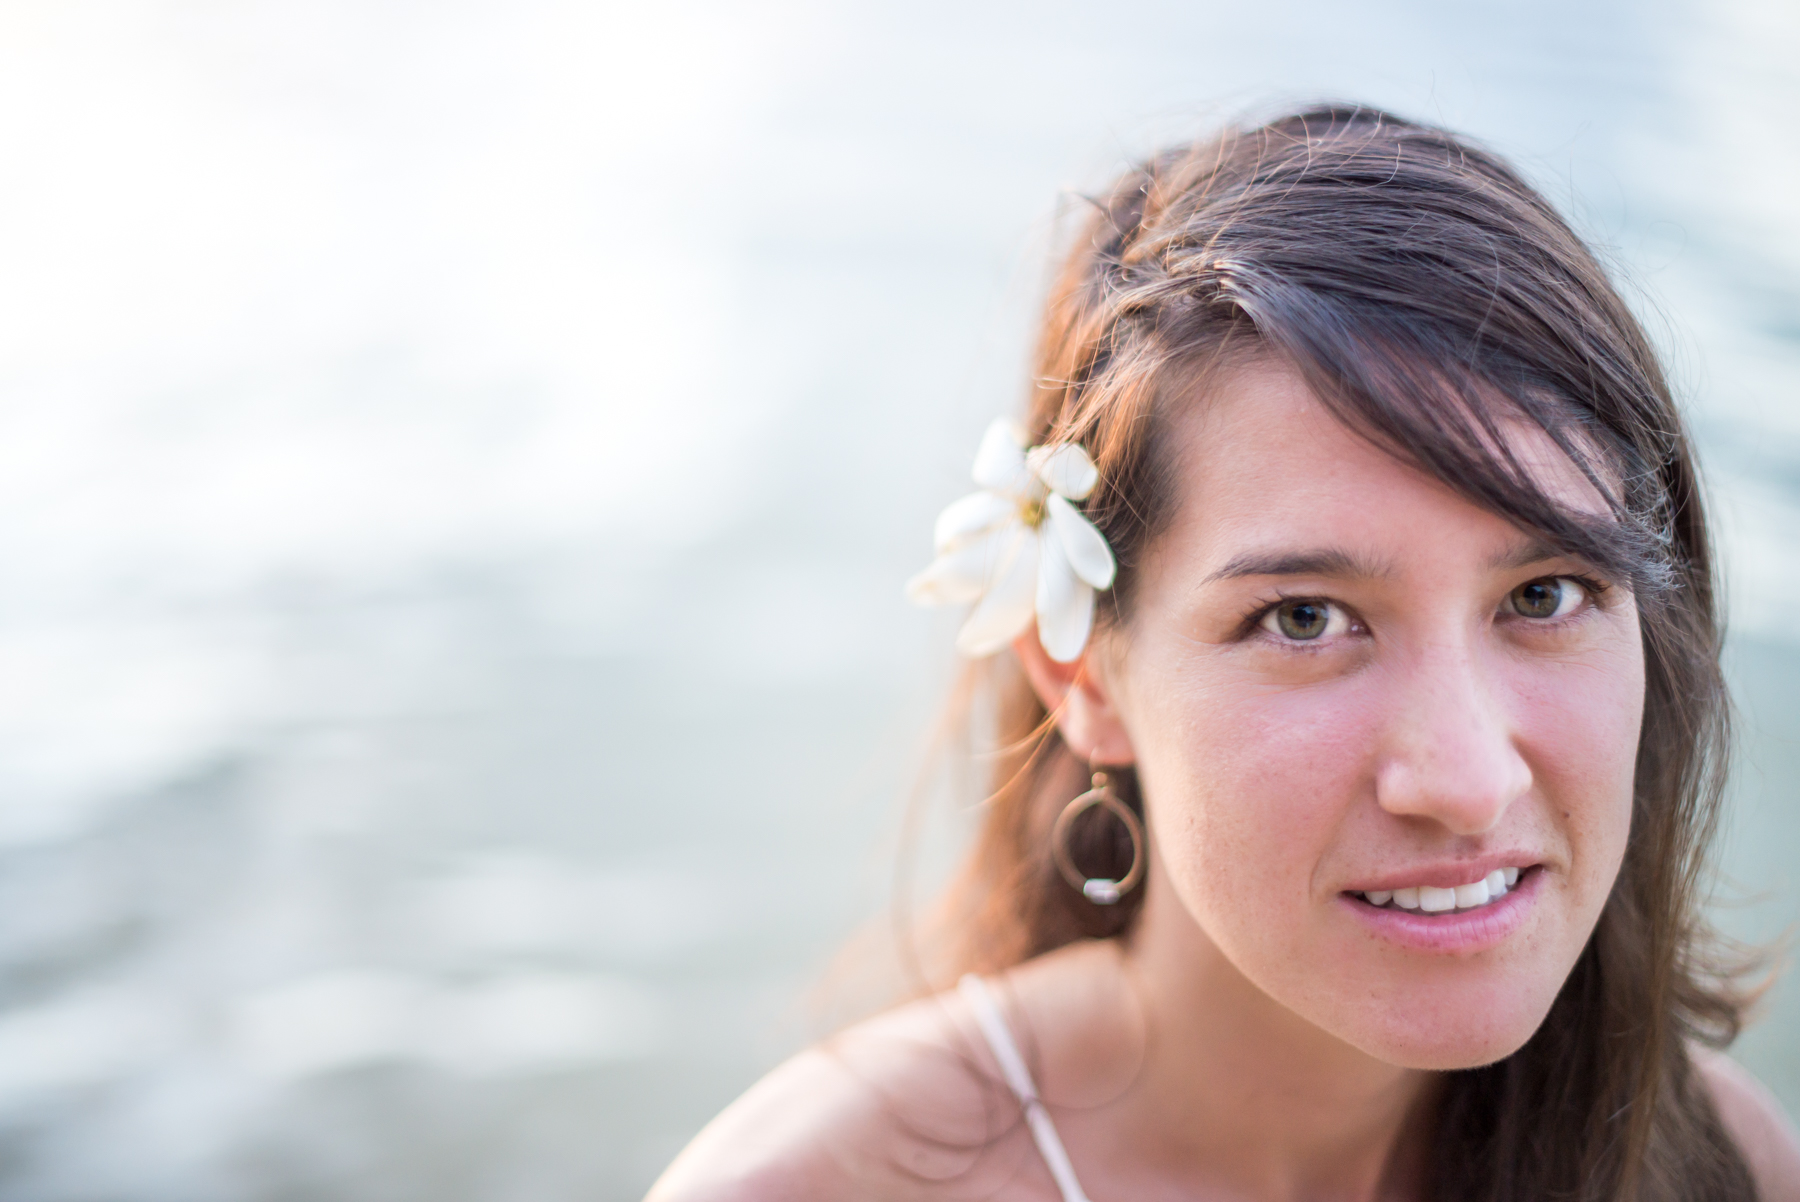 kauai.portrait.photography.hawaii.pureakua.love.2-11.jpg